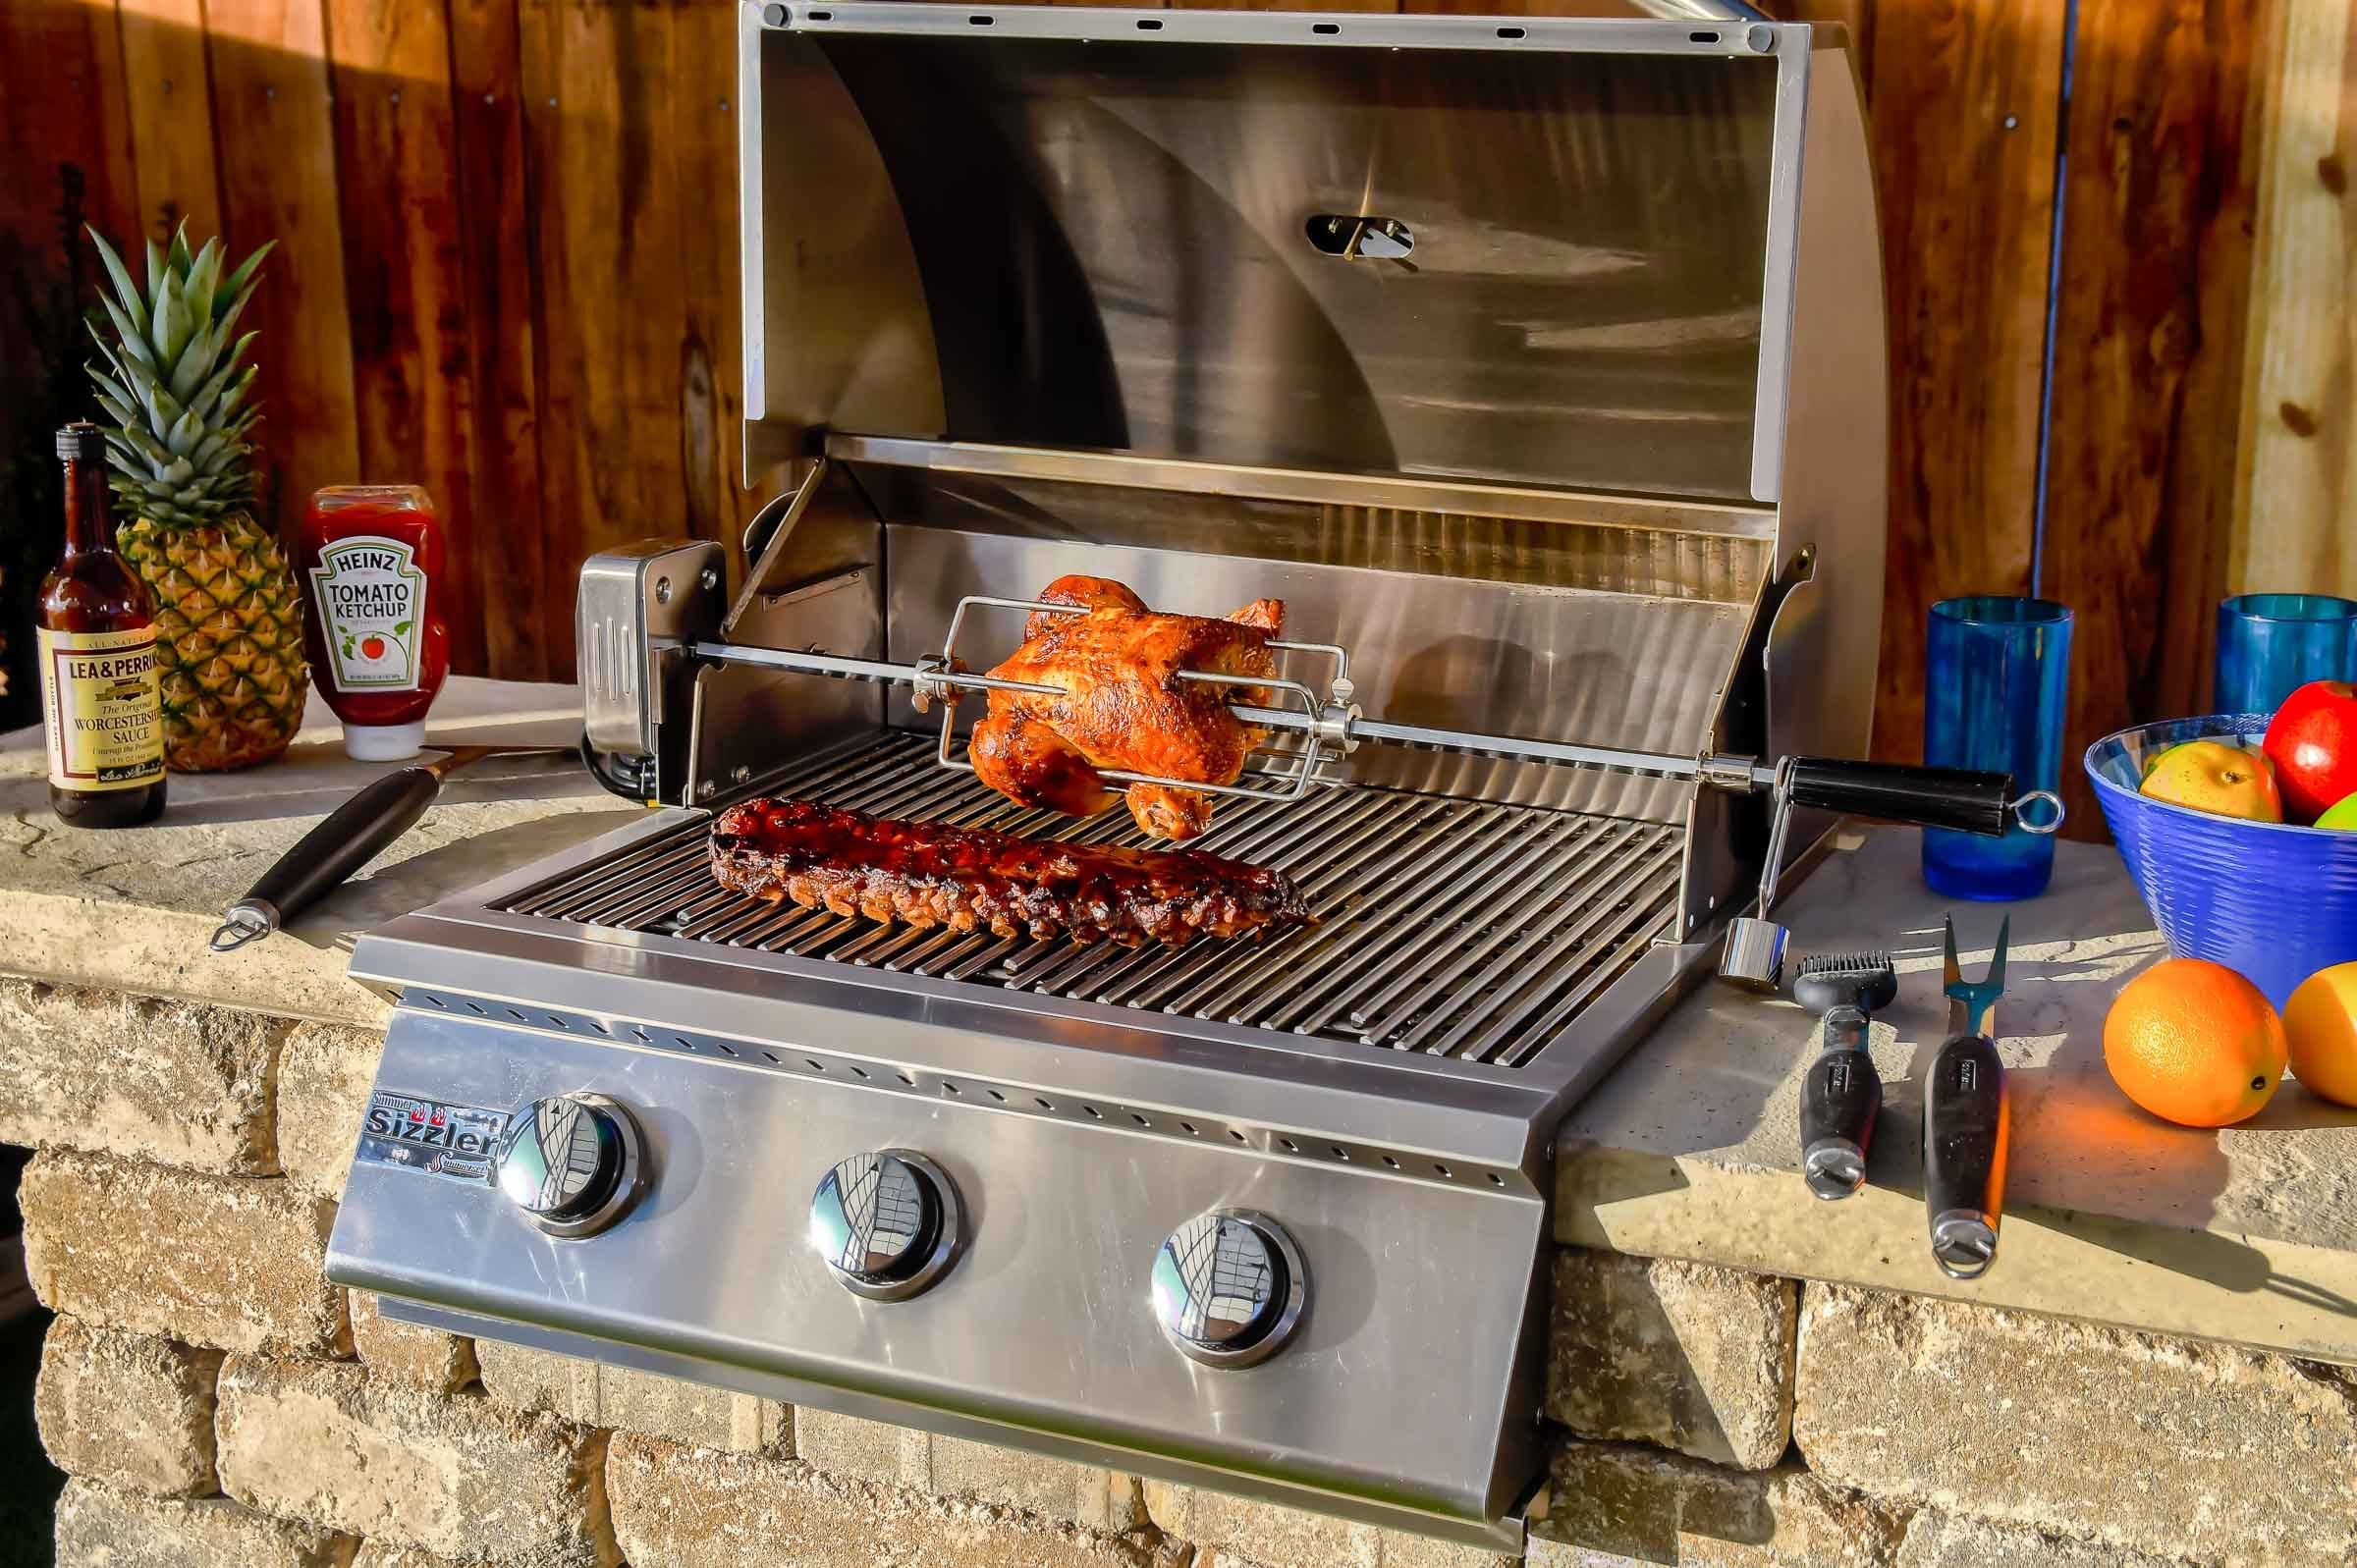 Outdoor Grill Stations | Shop Romanstone for impressive ... on Patio Grill Station id=21992